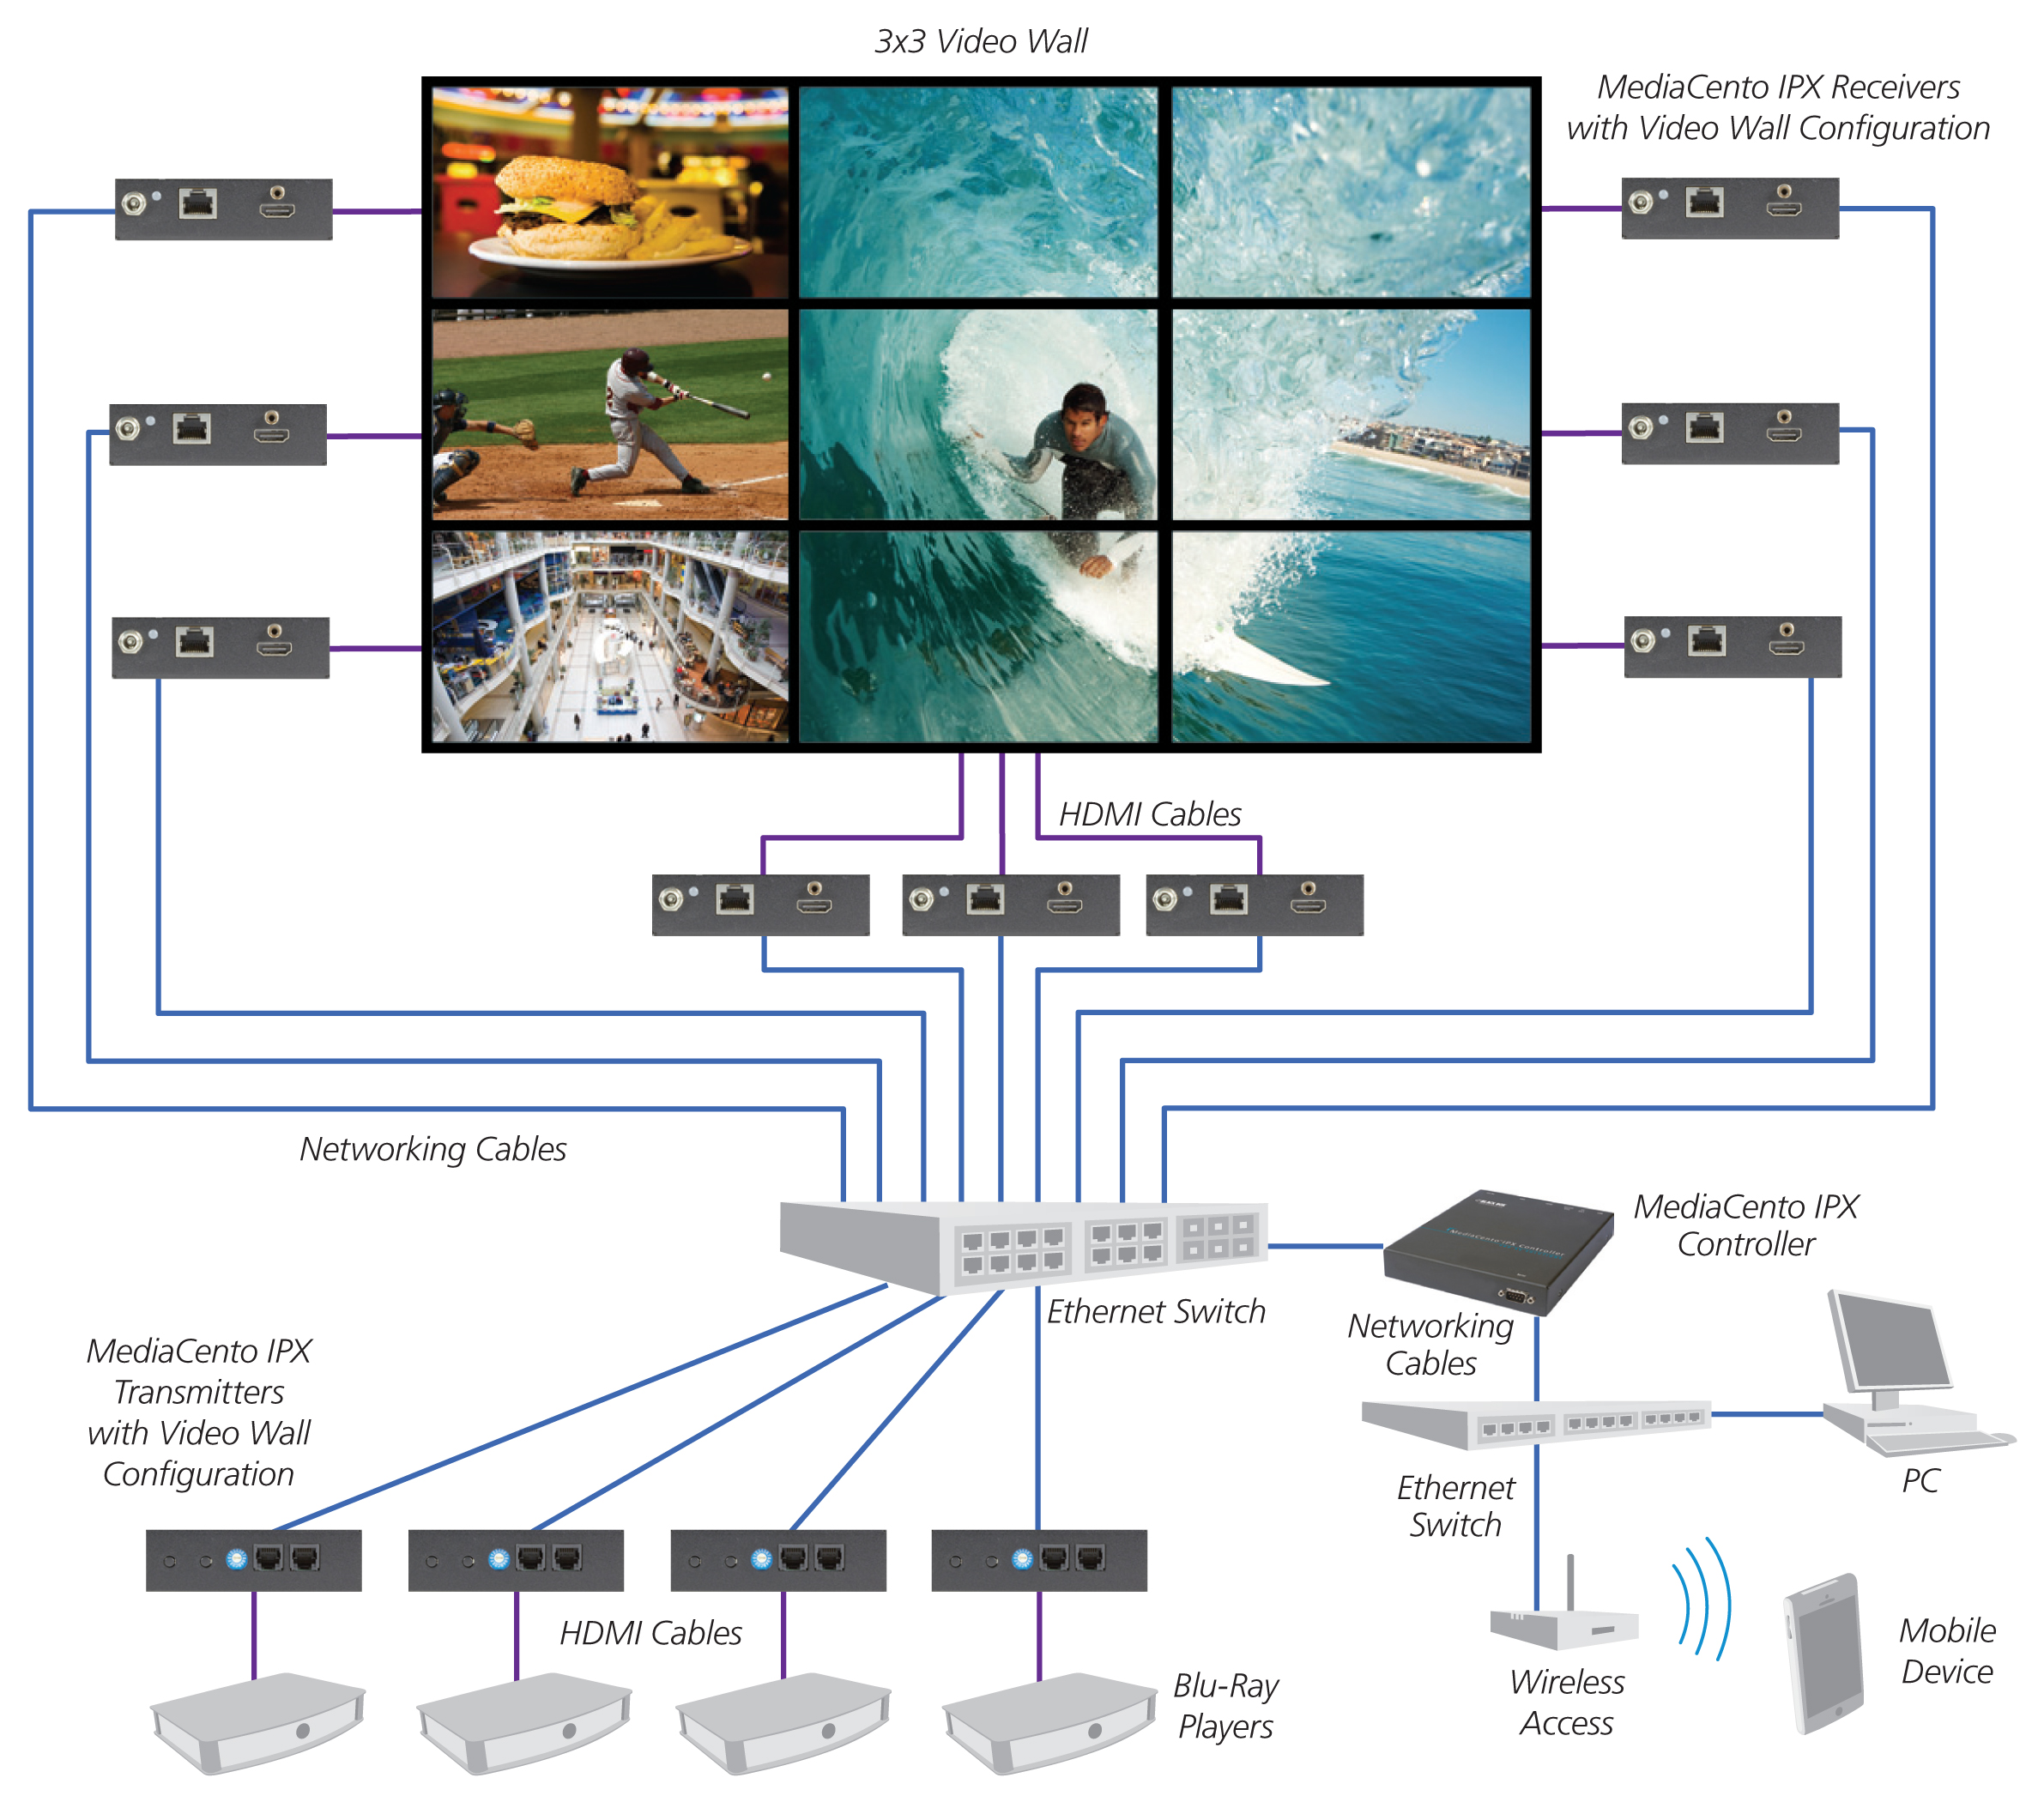 MediaCento Multicast mode application with video wall and matrix switching Configuration